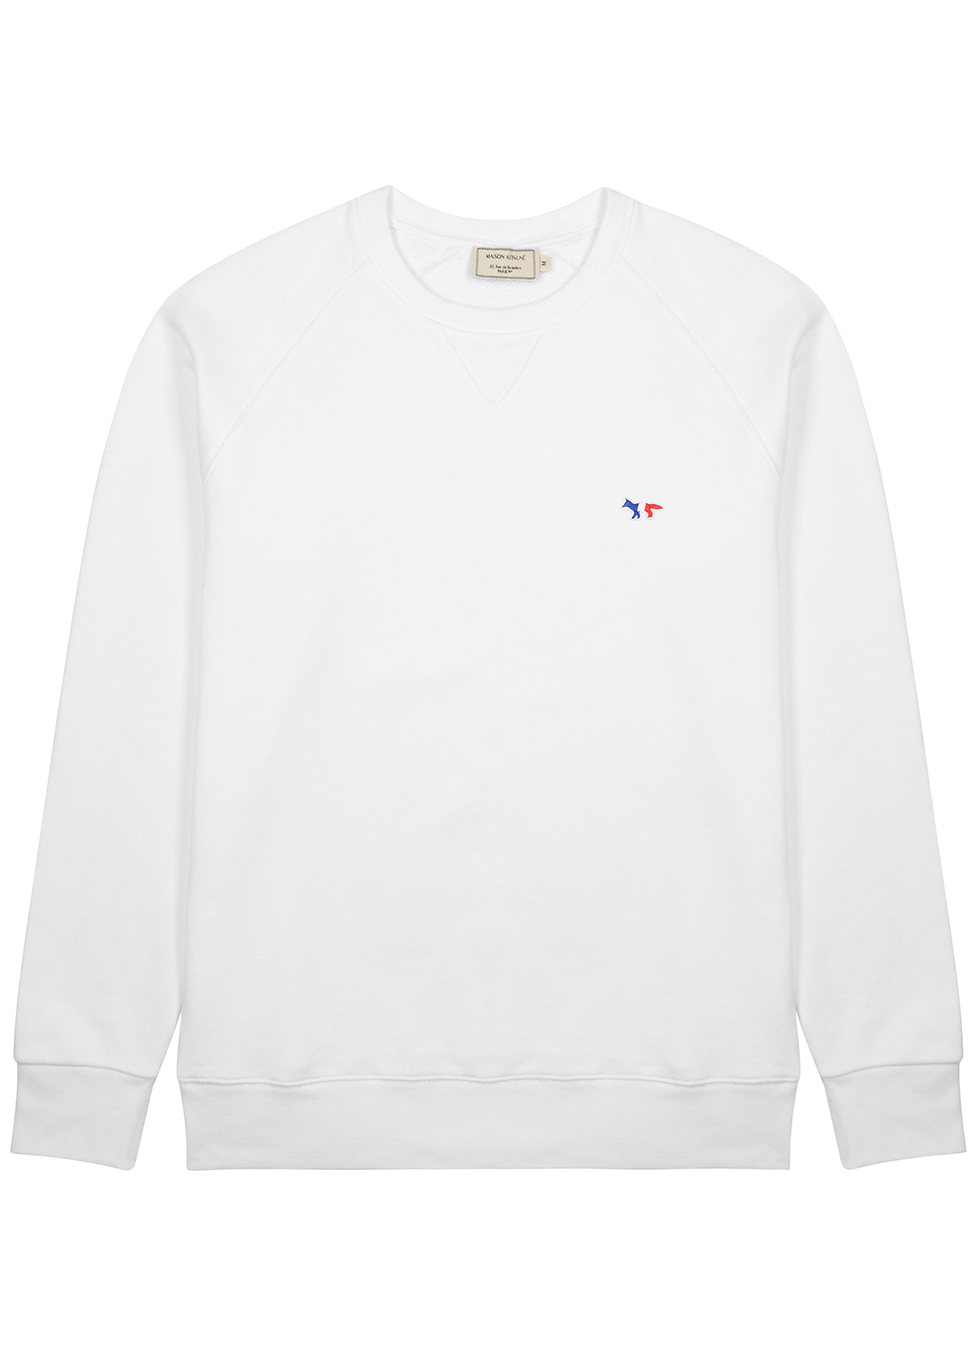 White cotton sweatshirt - Maison Kitsuné